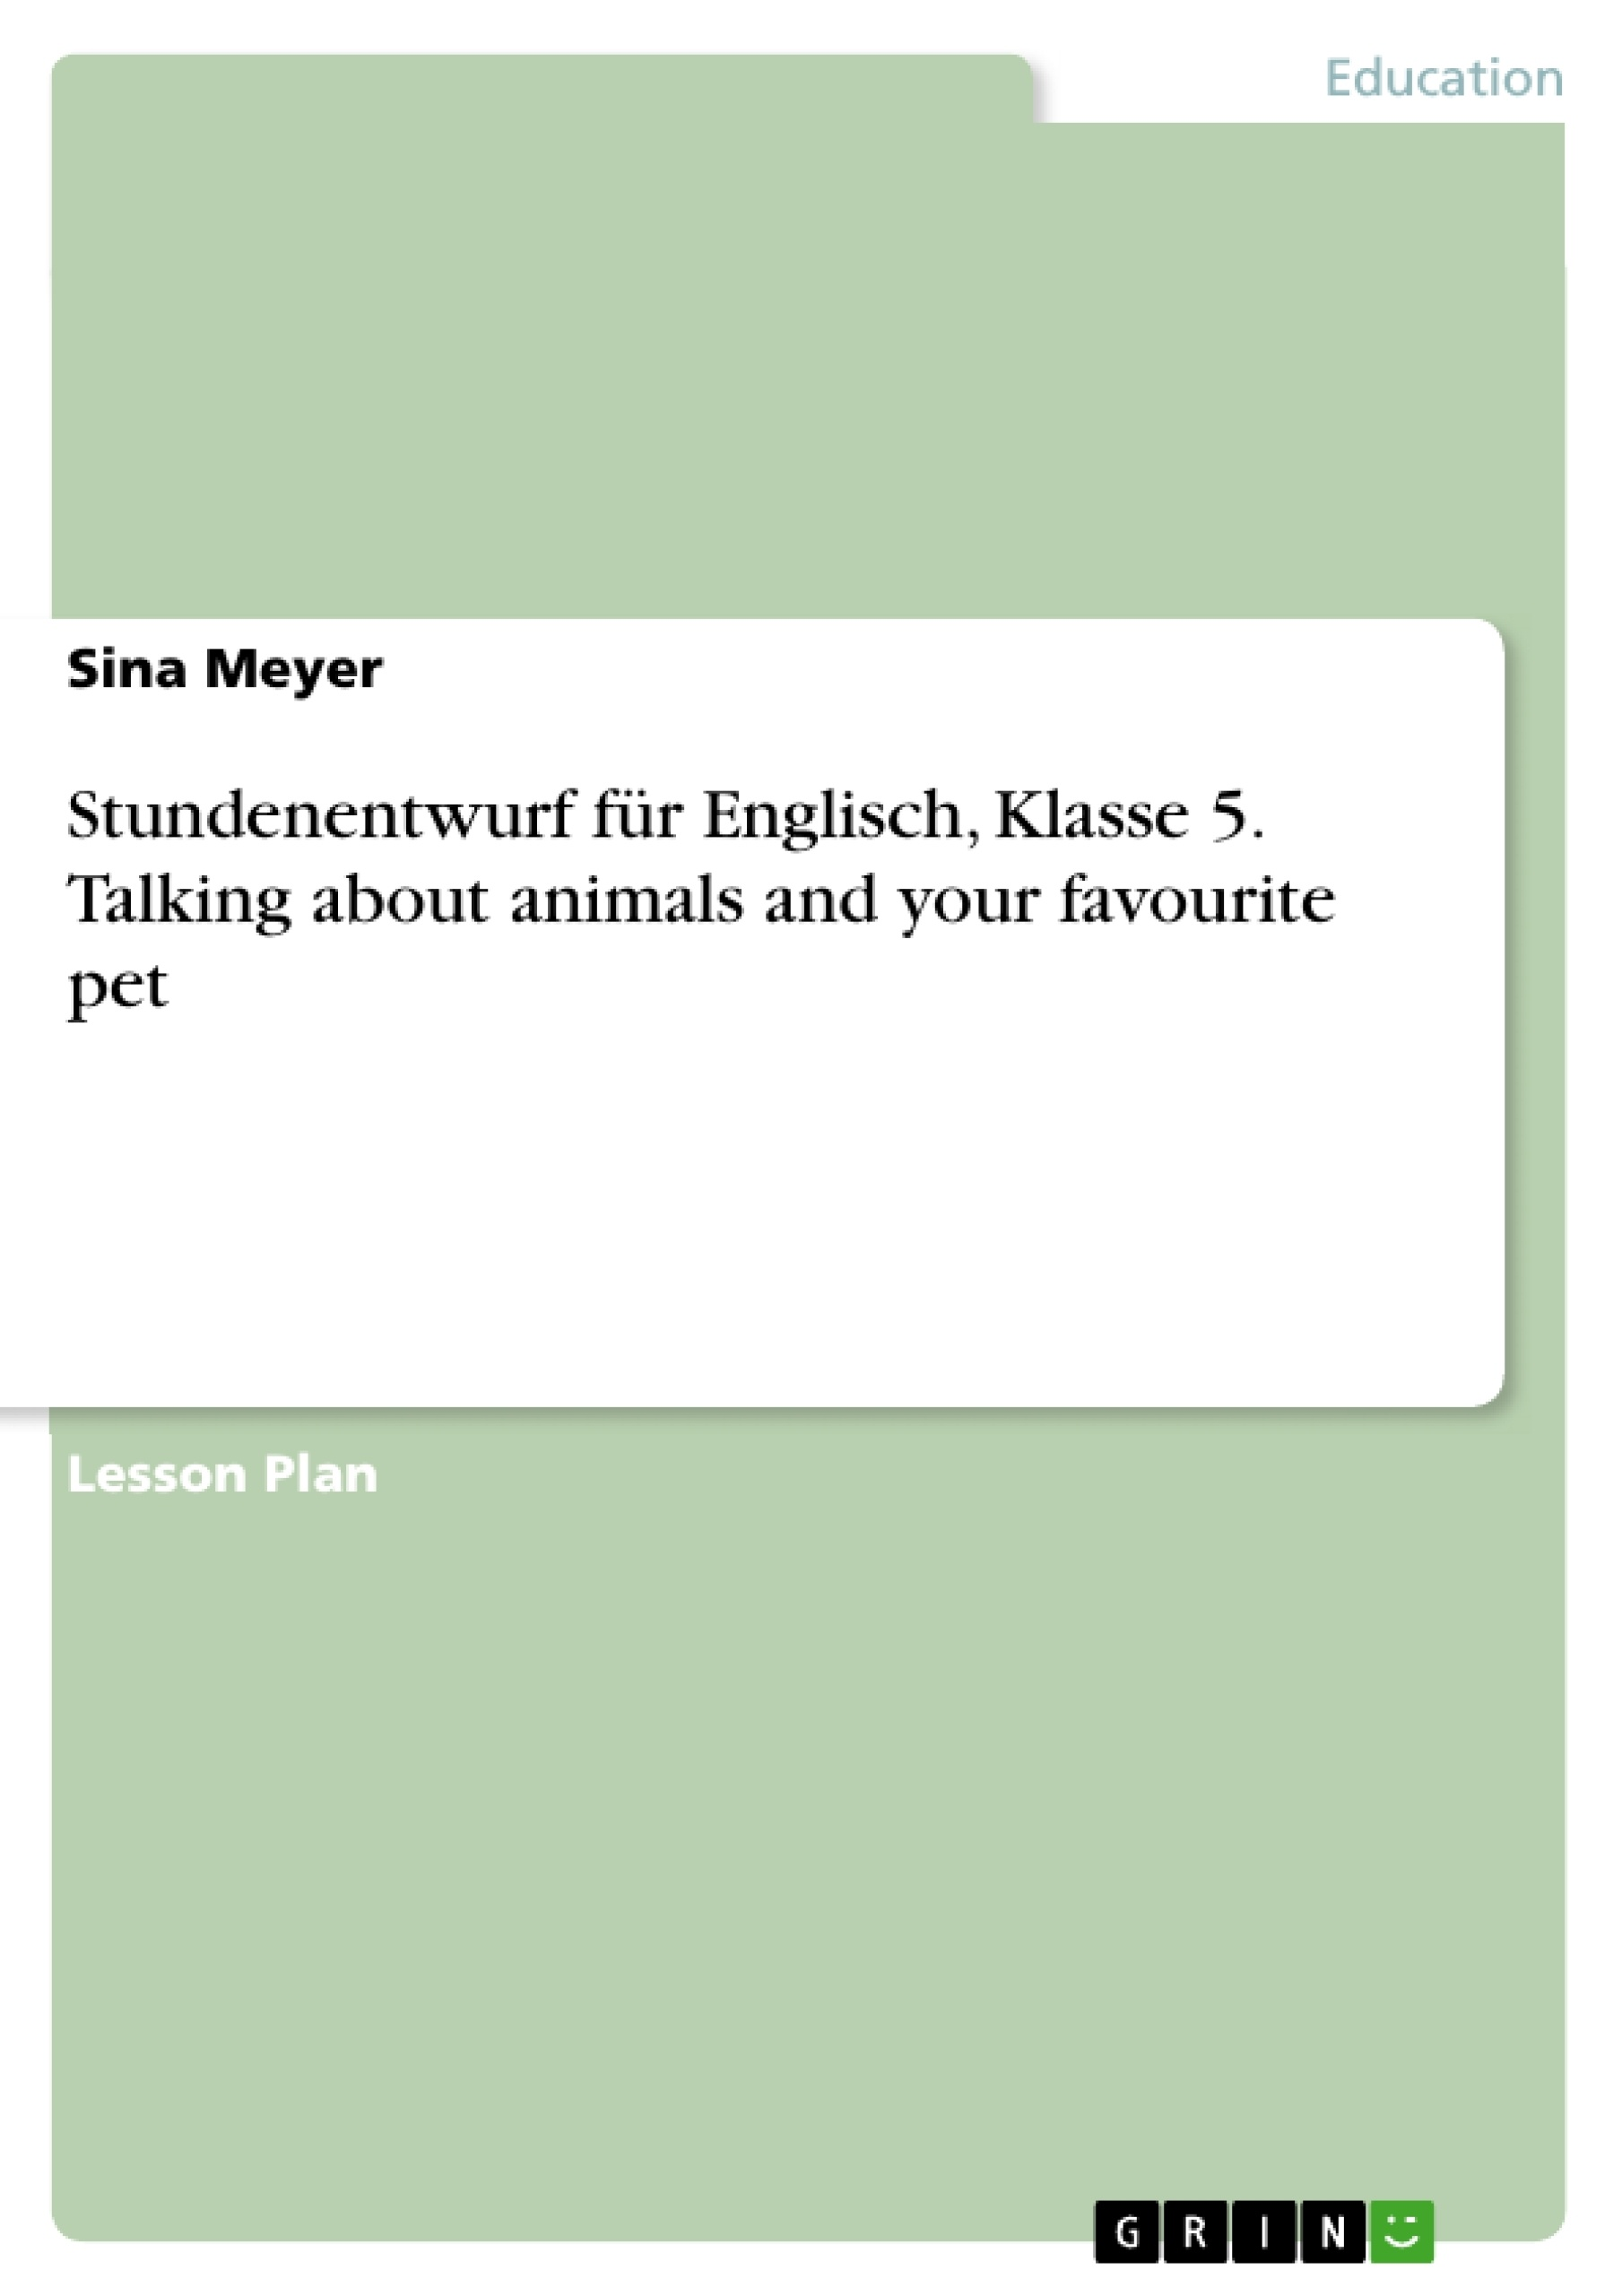 Title: Stundenentwurf für Englisch, Klasse 5. Talking about animals and your favourite pet